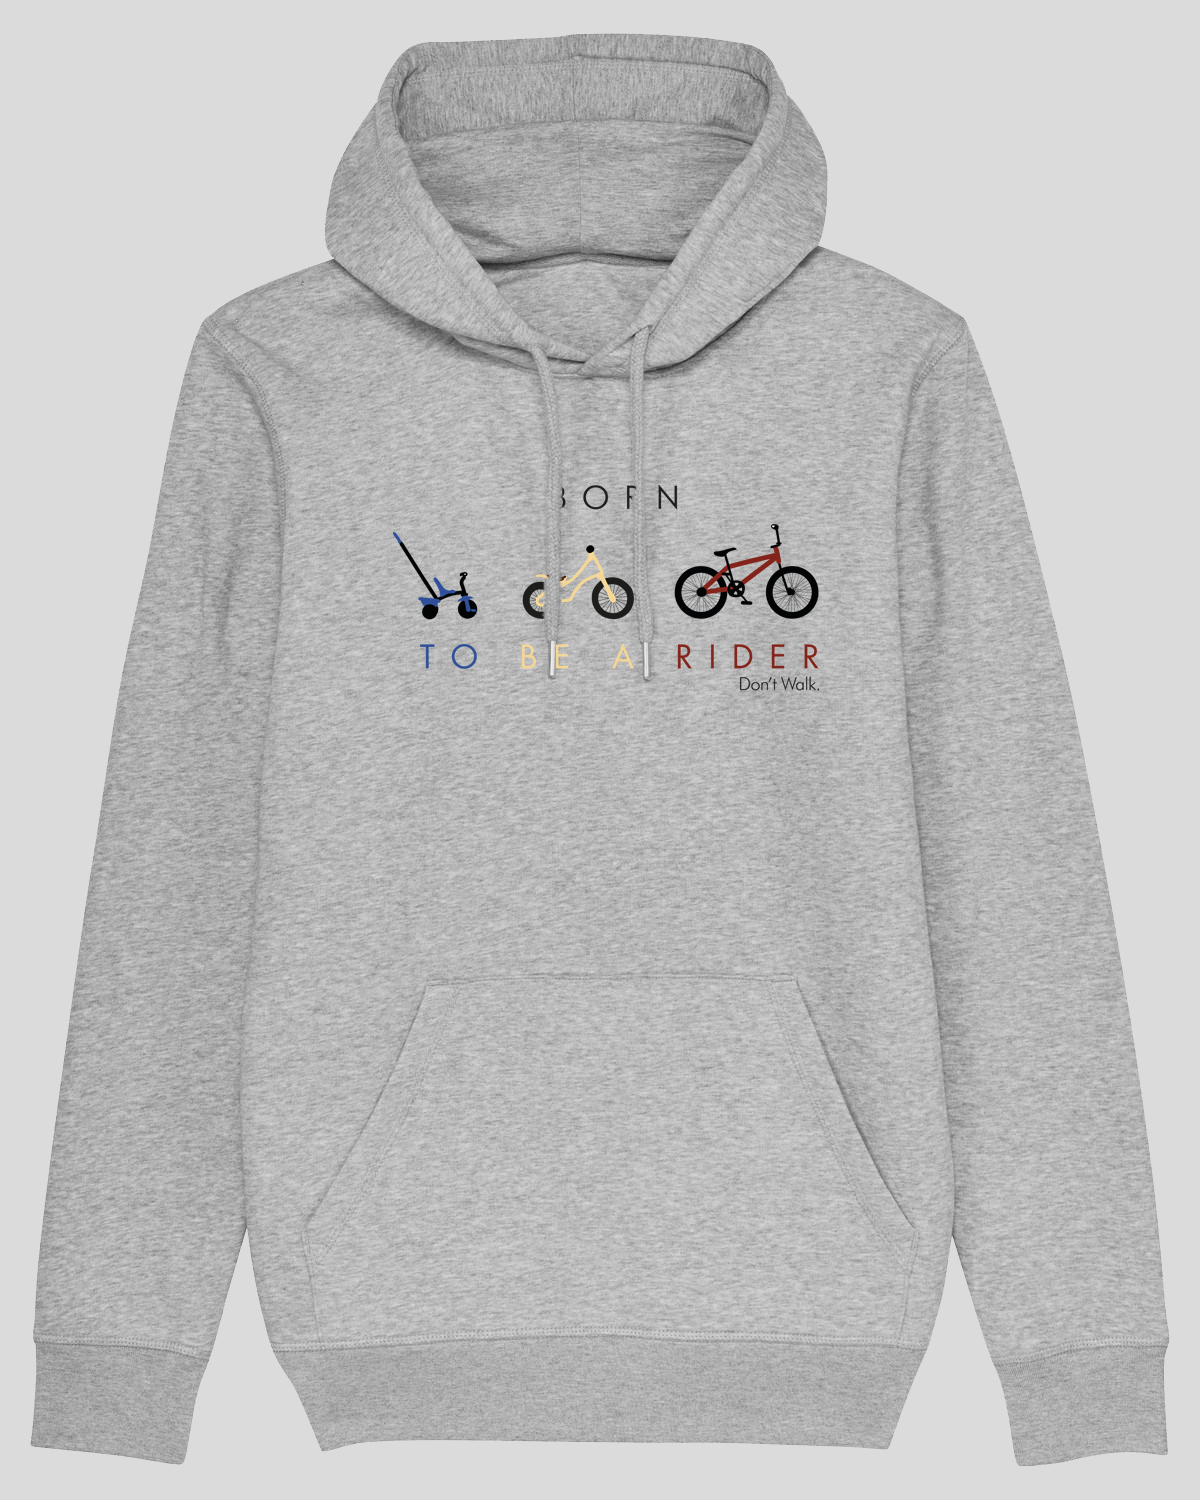 a79f19438d991 Hoodies Born To Be Rider - Don't walk.